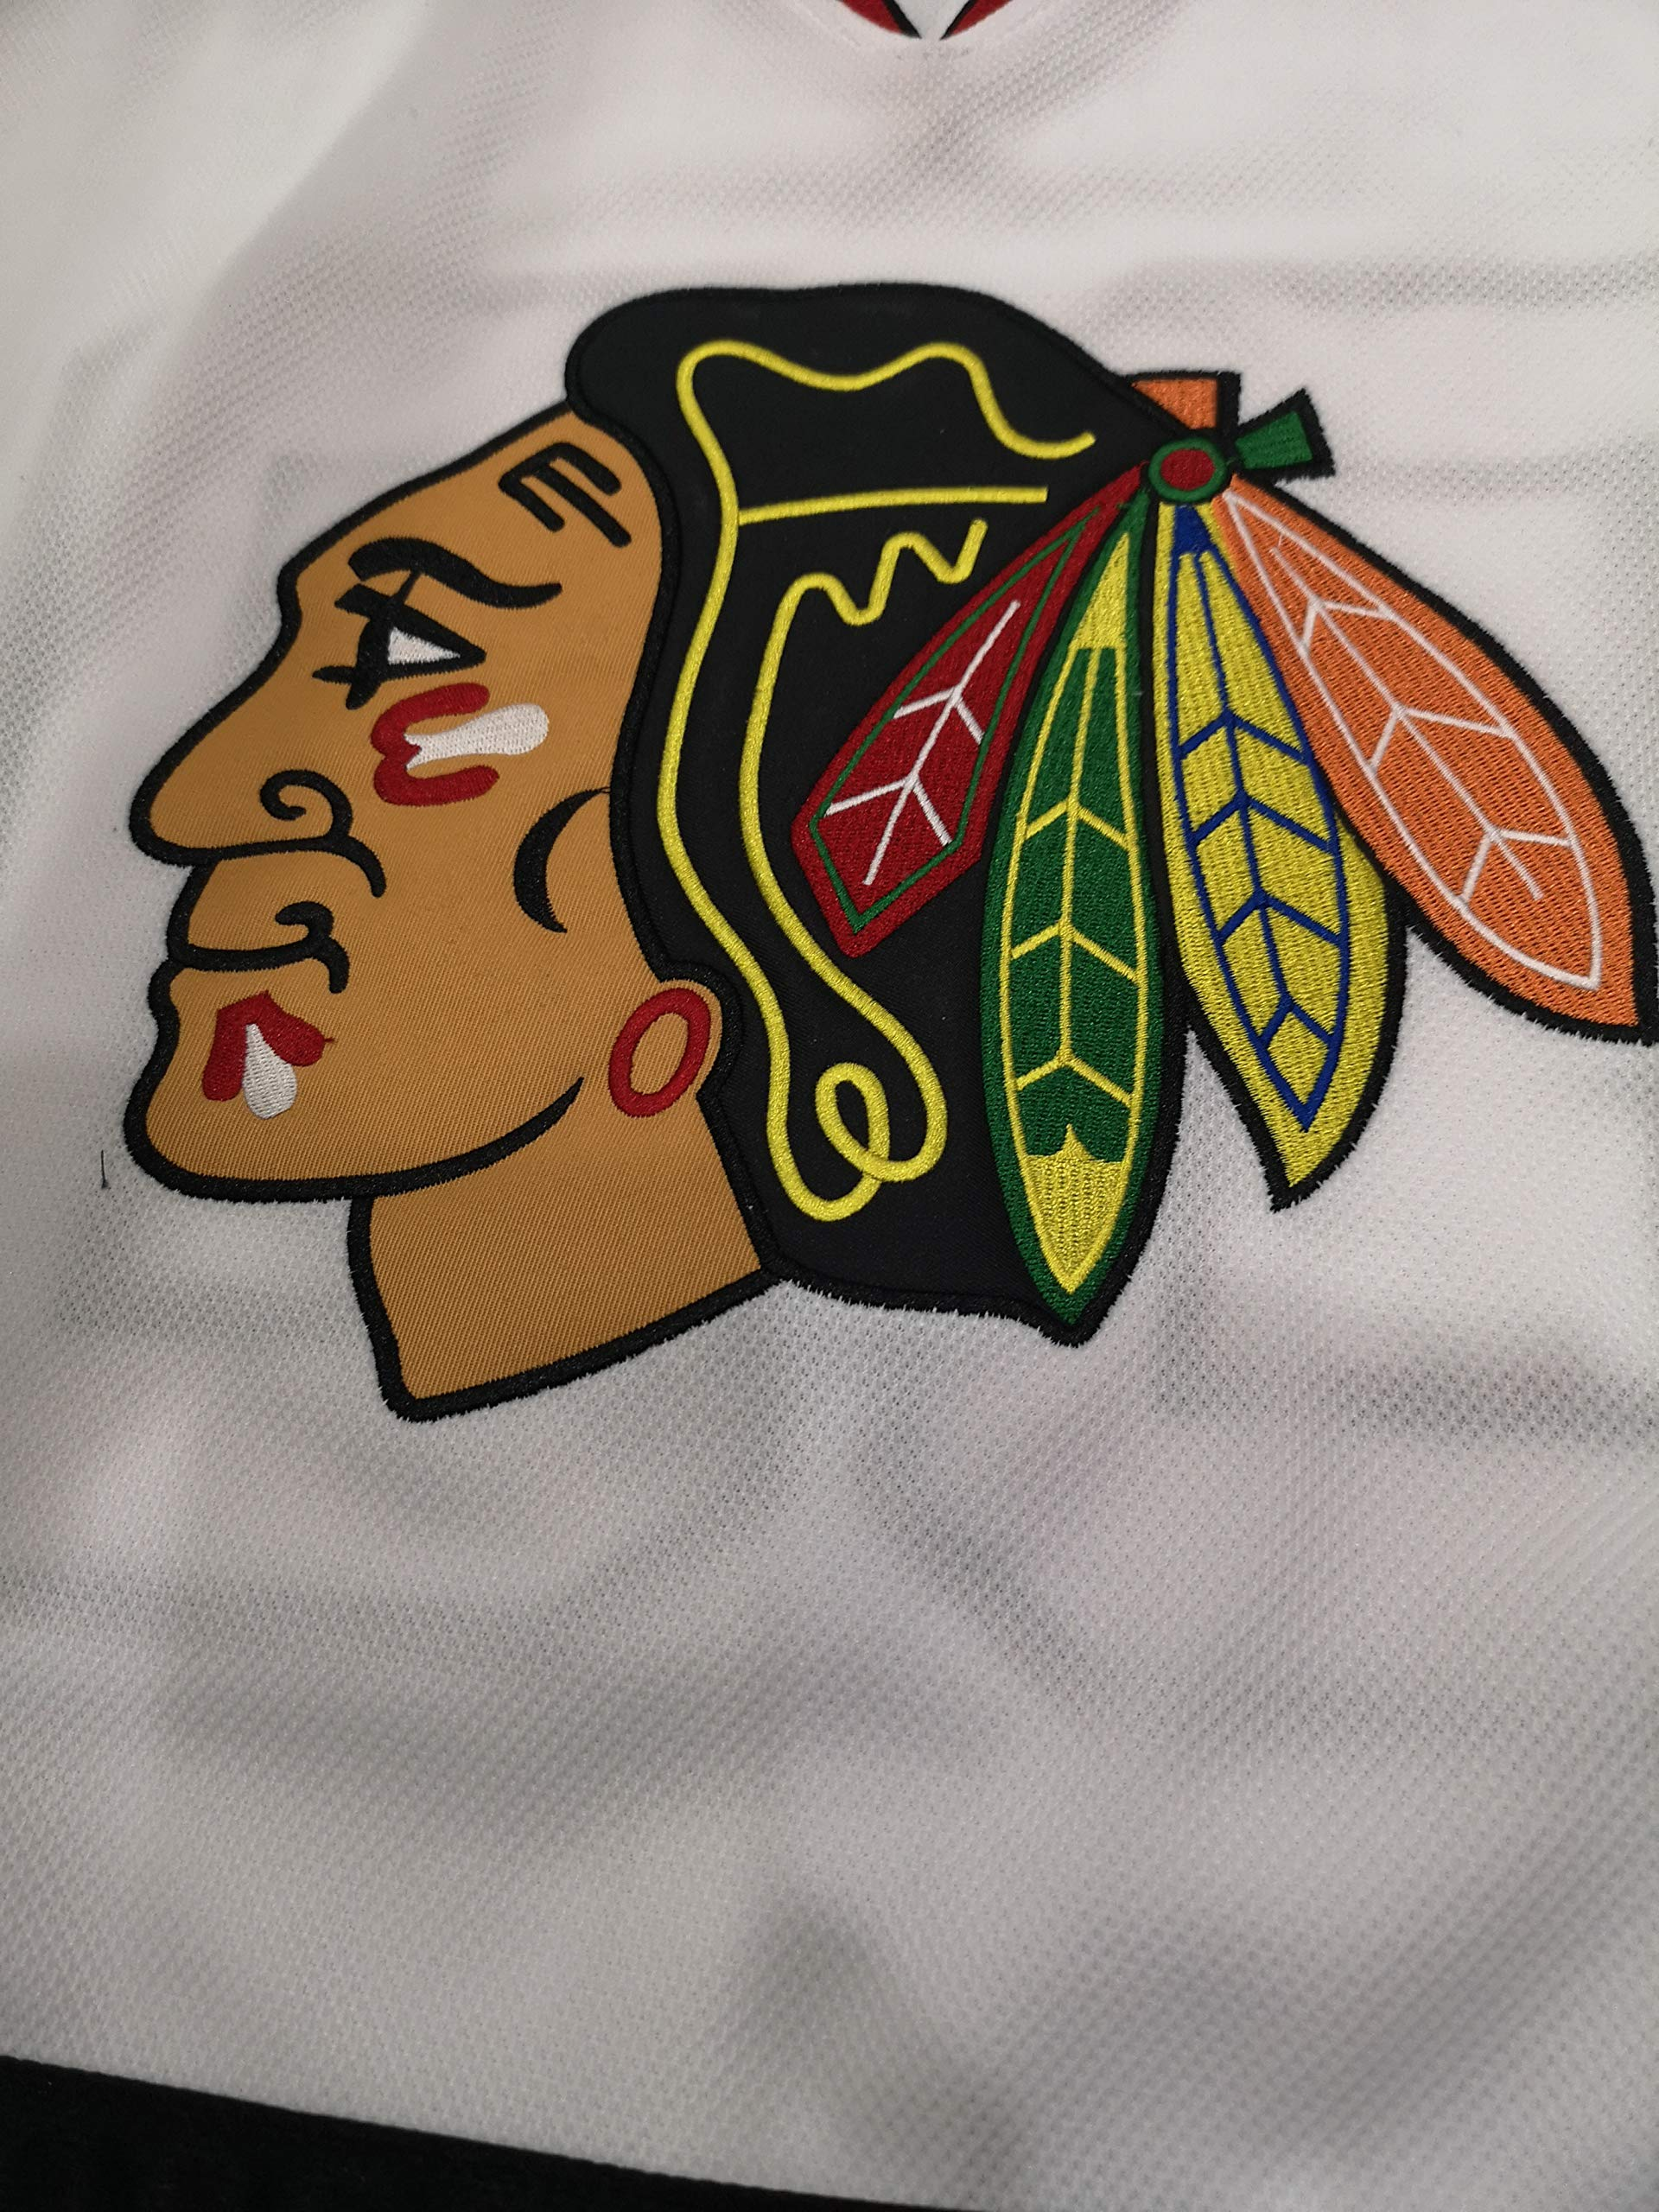 b05537c13 ... Clark Griswold  00 Hockey Jersey X-Mas Christmas Vacation The Movie Men  White. 🔍. Previous  Next